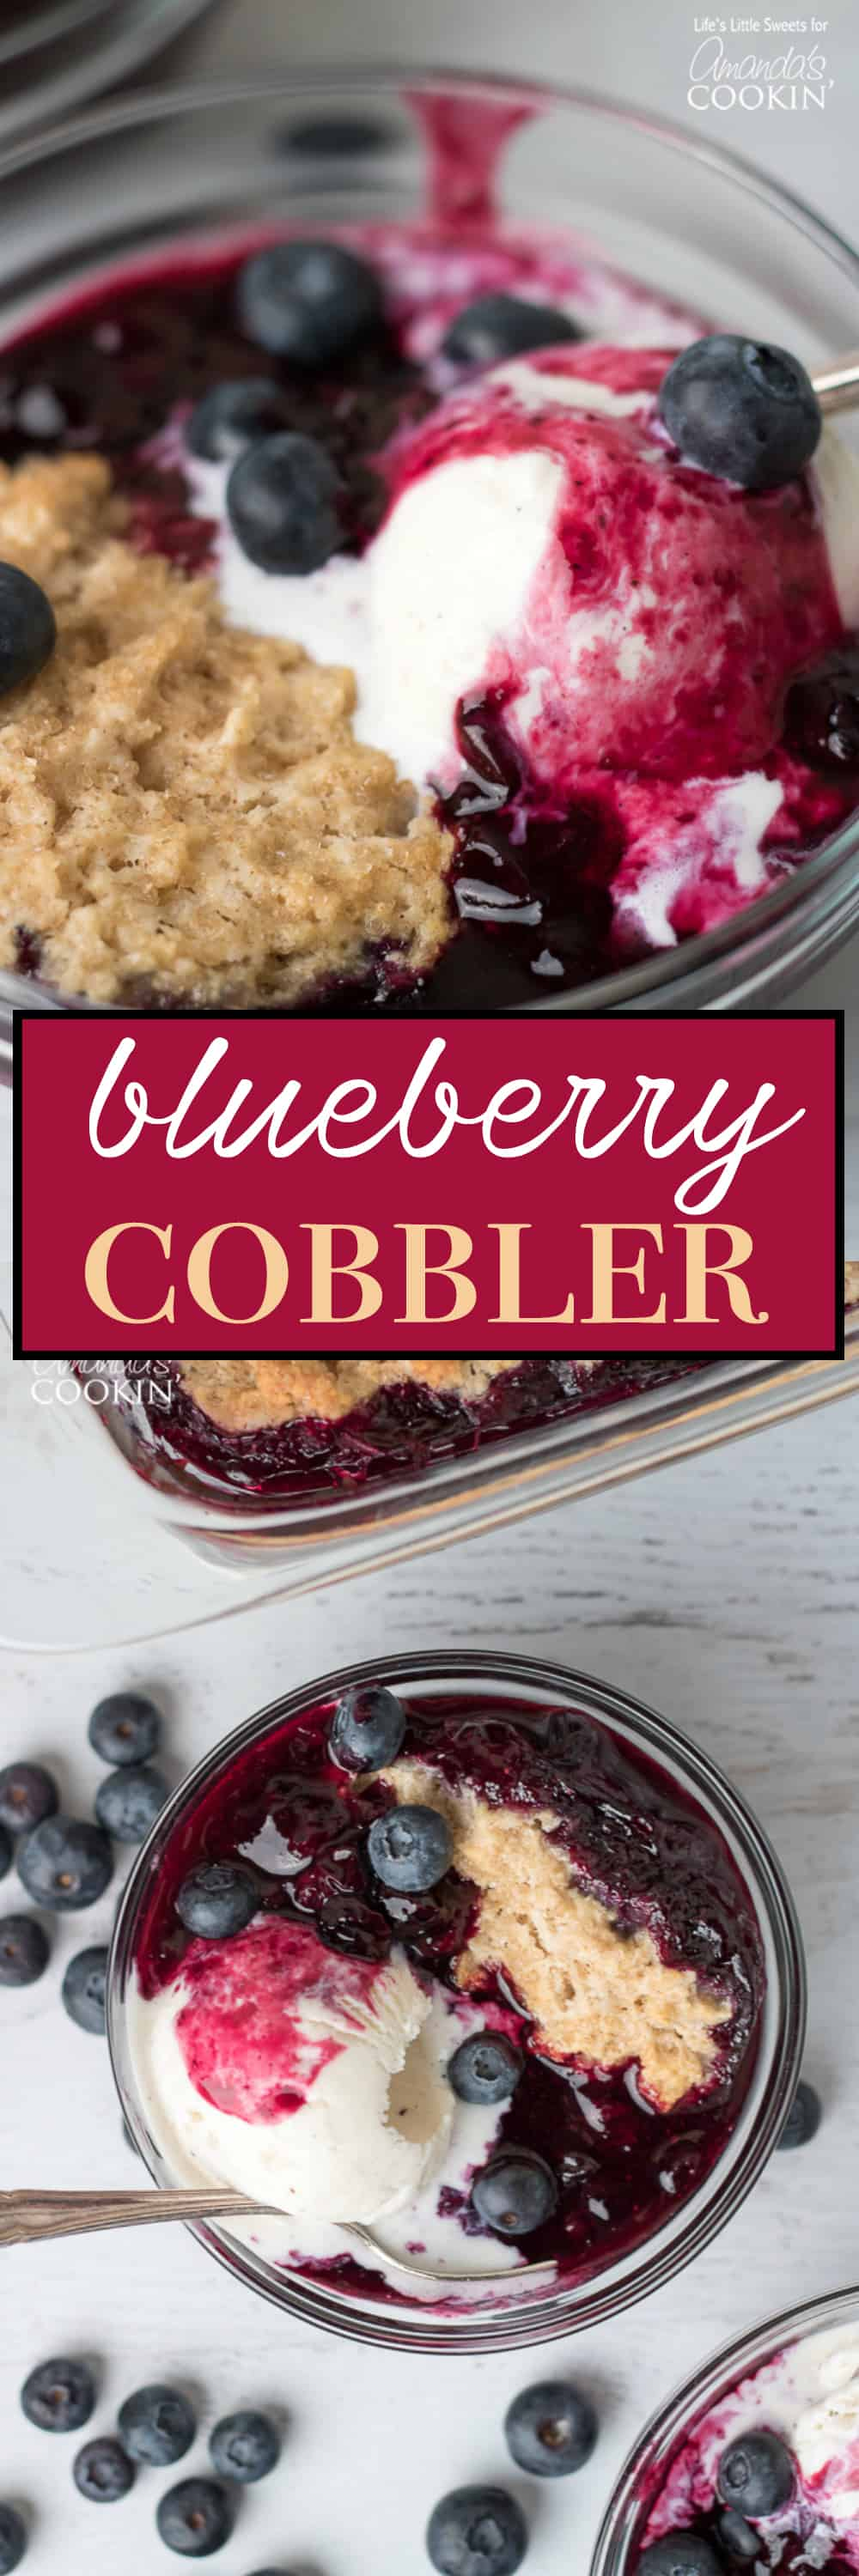 This Blueberry Cobbler has fresh, ripe blueberries with a crisp, biscuit on top. It's wonderful on its own or served with vanilla ice cream!